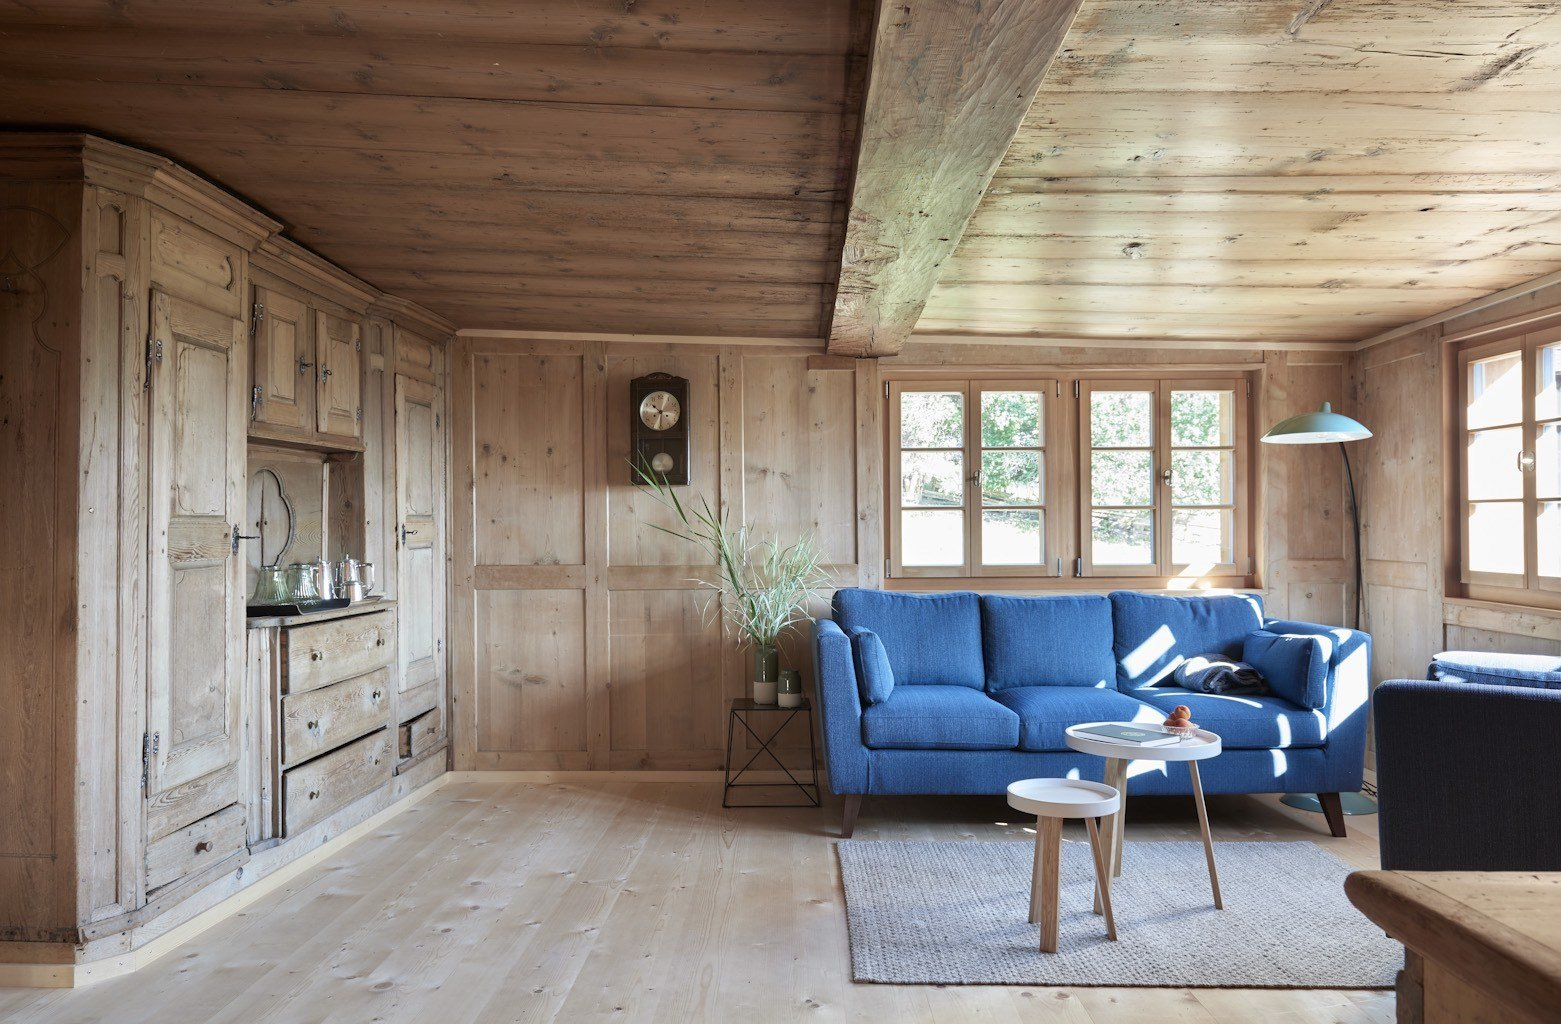 Living Room, Light Hardwood Floor, Sofa, and End Tables  Photo 4 of 13 in A Renovated Pagan House in the Swiss Alps Puts Guests in Touch With the Past